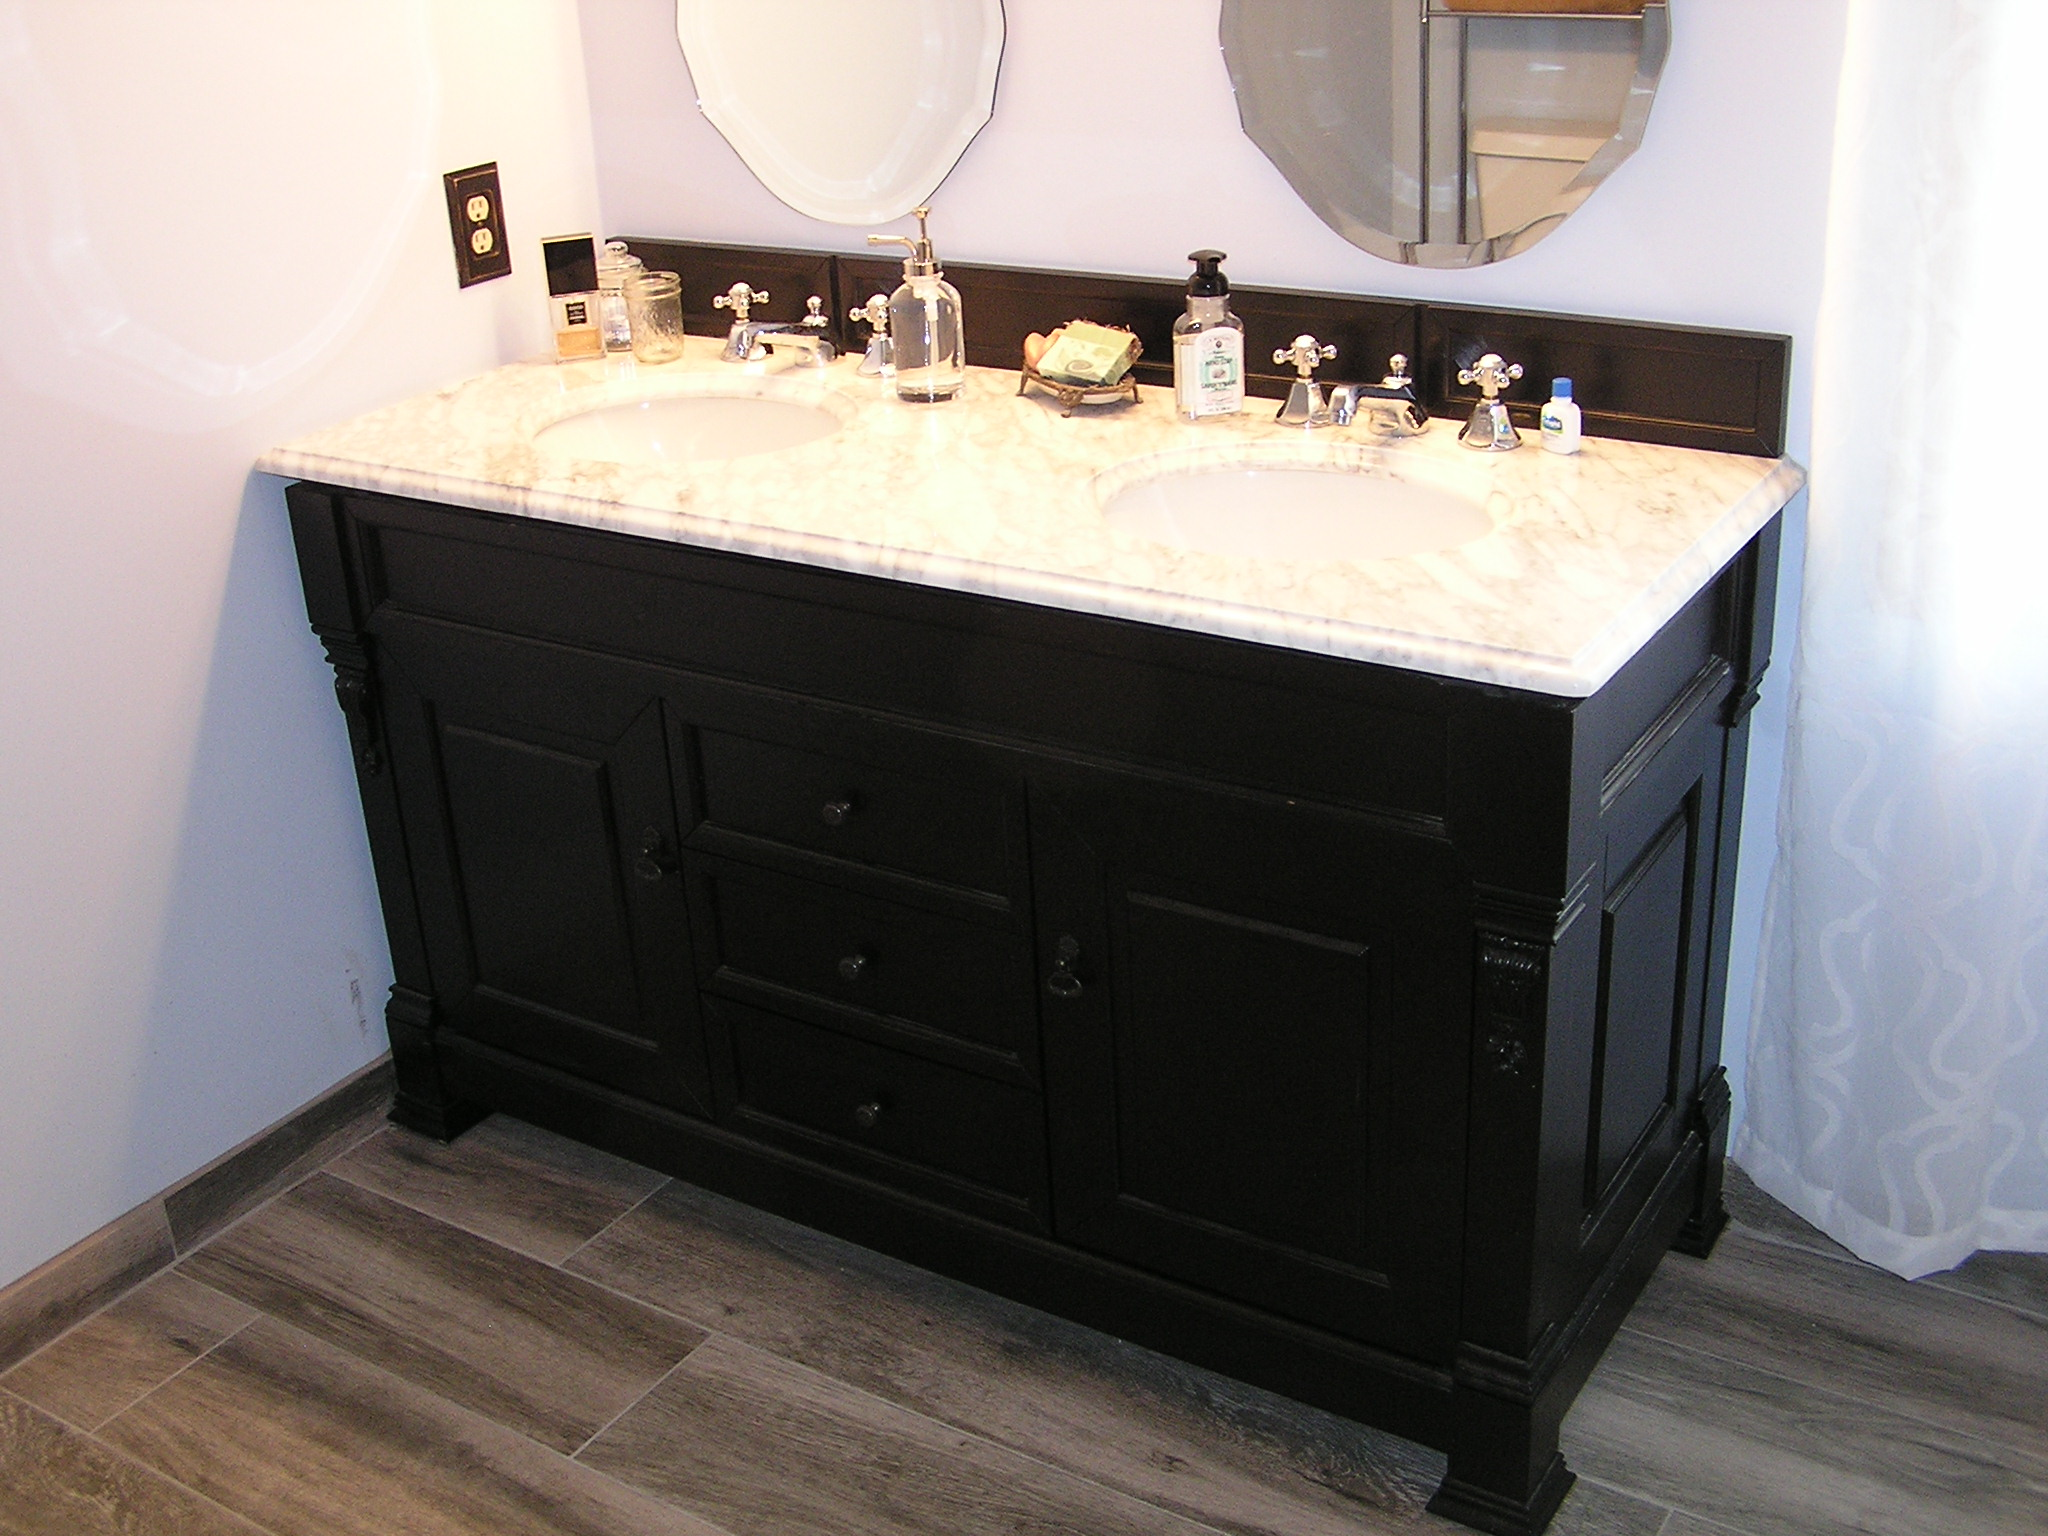 This Home Remodeling Project In Woodbury MN Includes The Full Remodel Of  The Master Bathroom, A Second Bathroom, And Some Facelift Work In The  Kitchen.